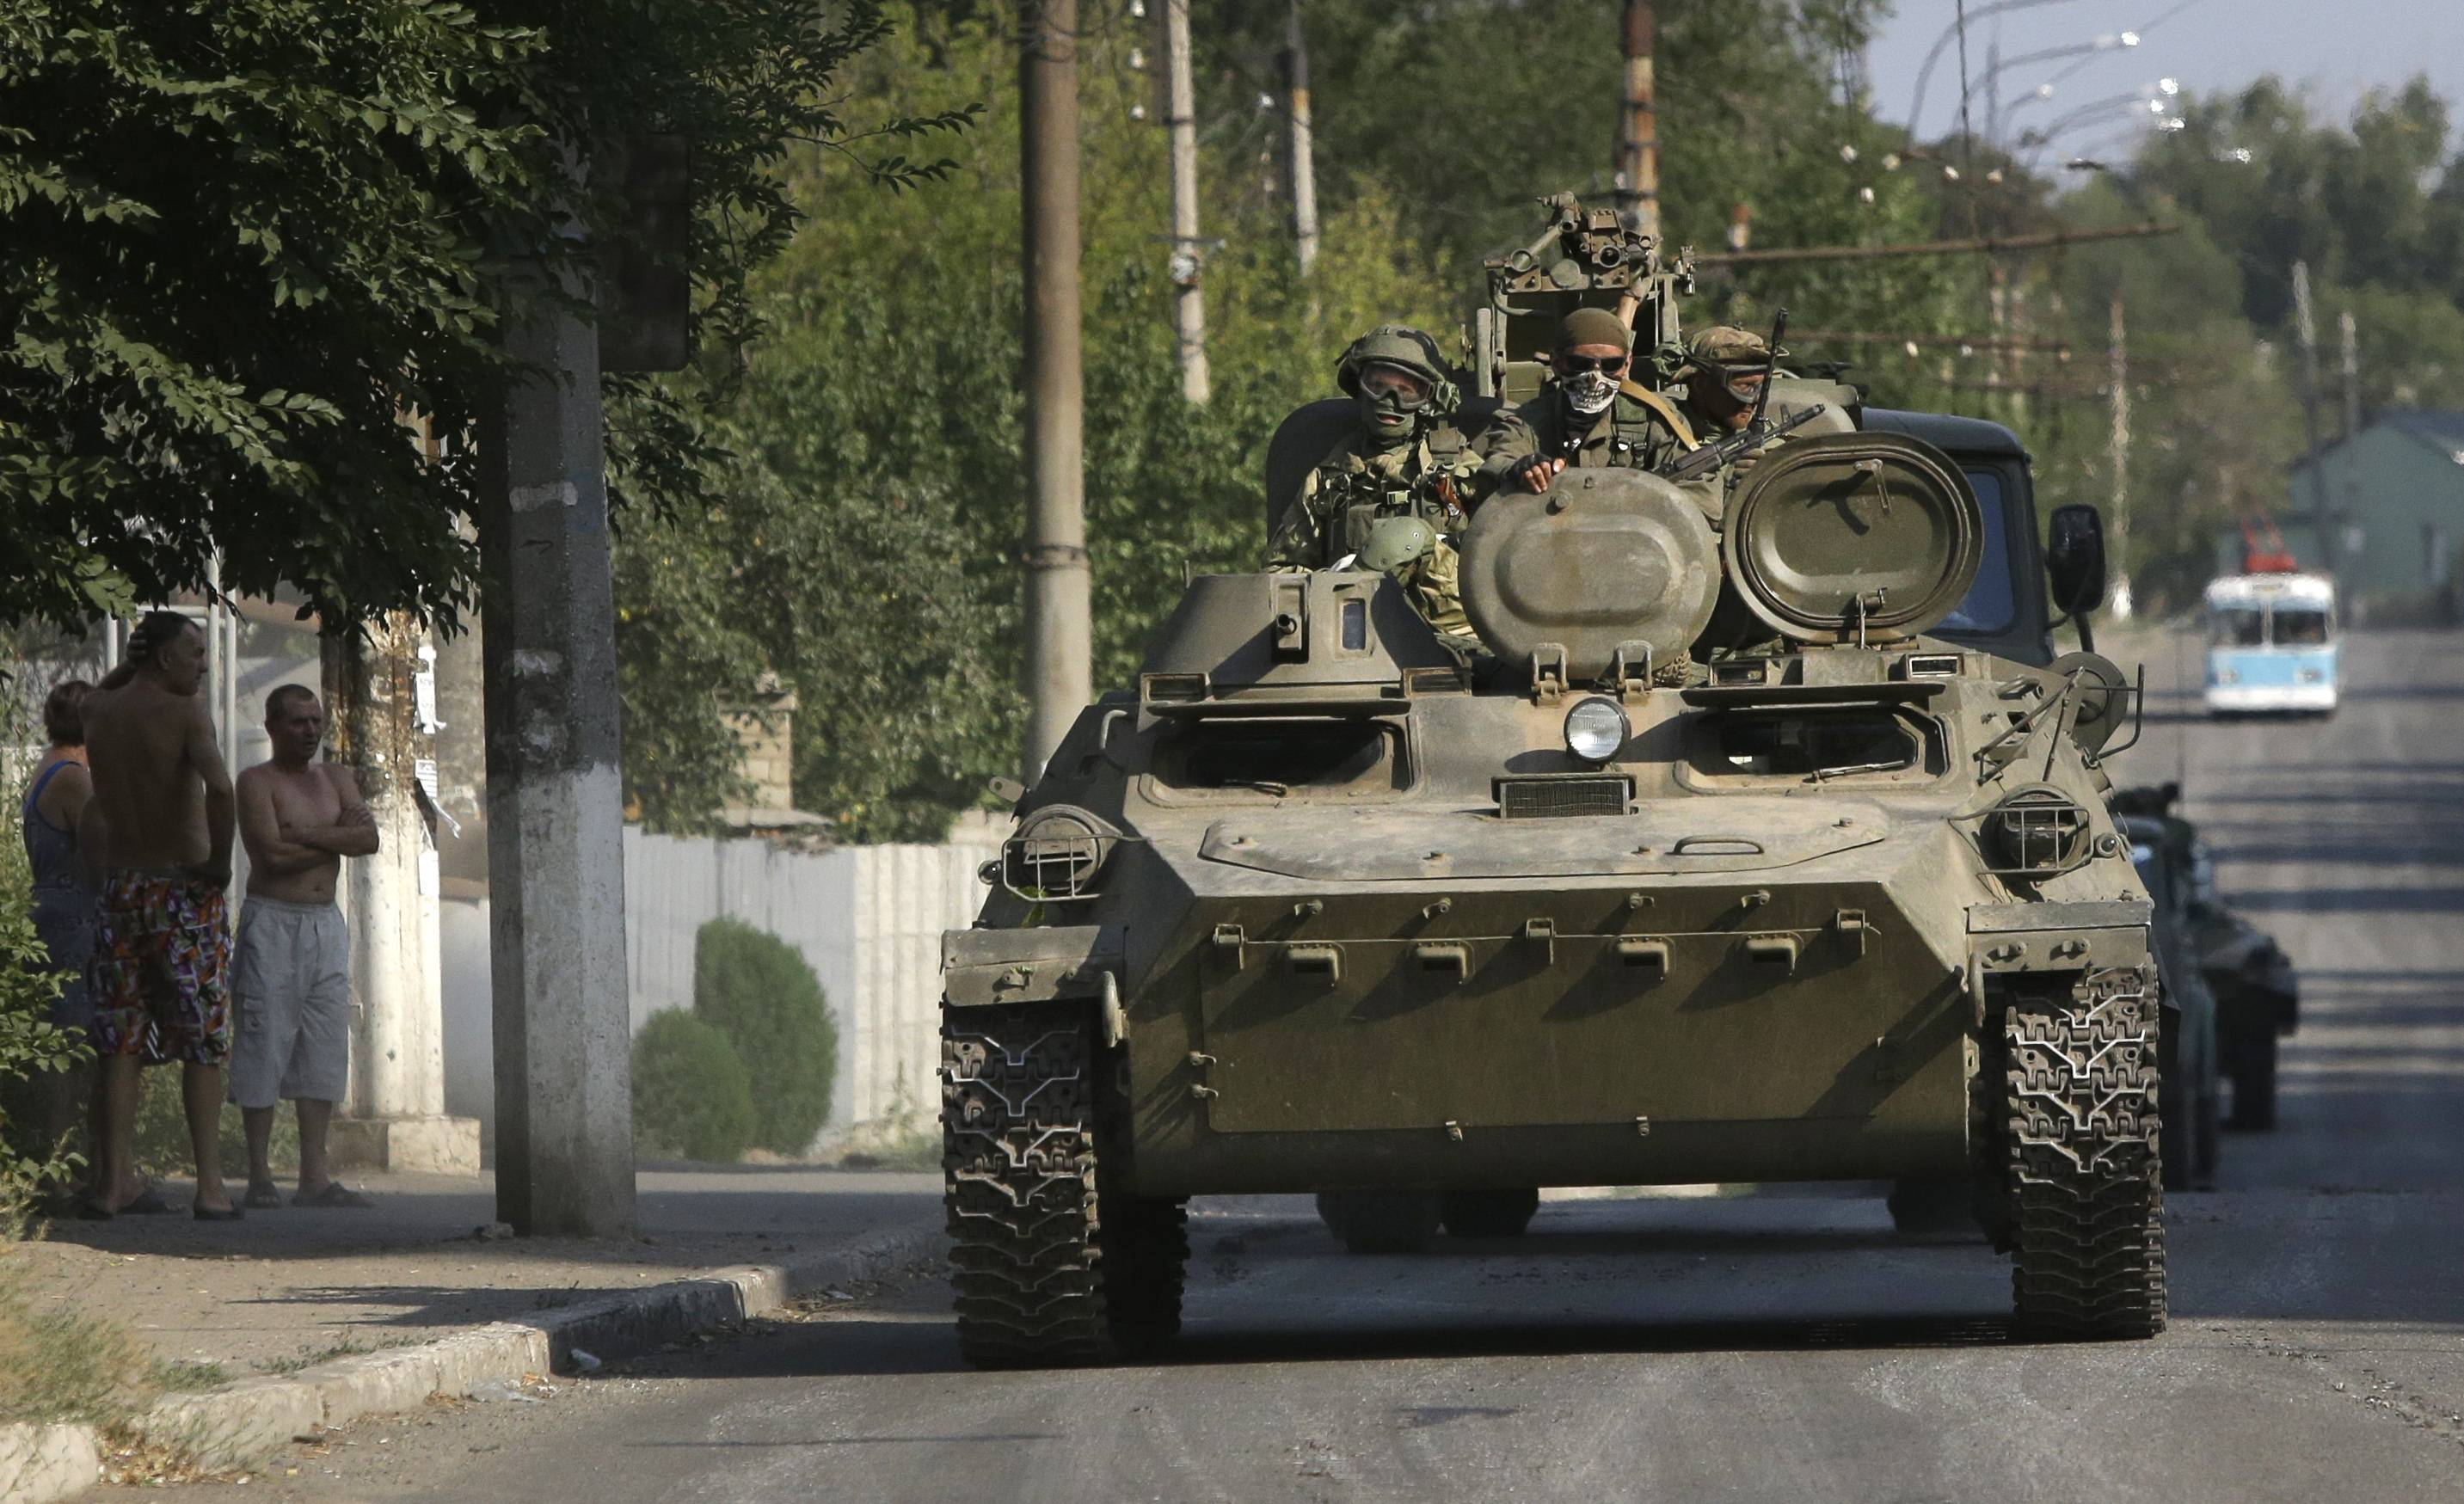 Pro-Russian rebels ride on an APC Sunday in the town of Krasnodon, eastern Ukraine. A column of several dozen heavy vehicles, including tanks and at least one rocket launcher, rolled through rebel-held territory on Sunday.